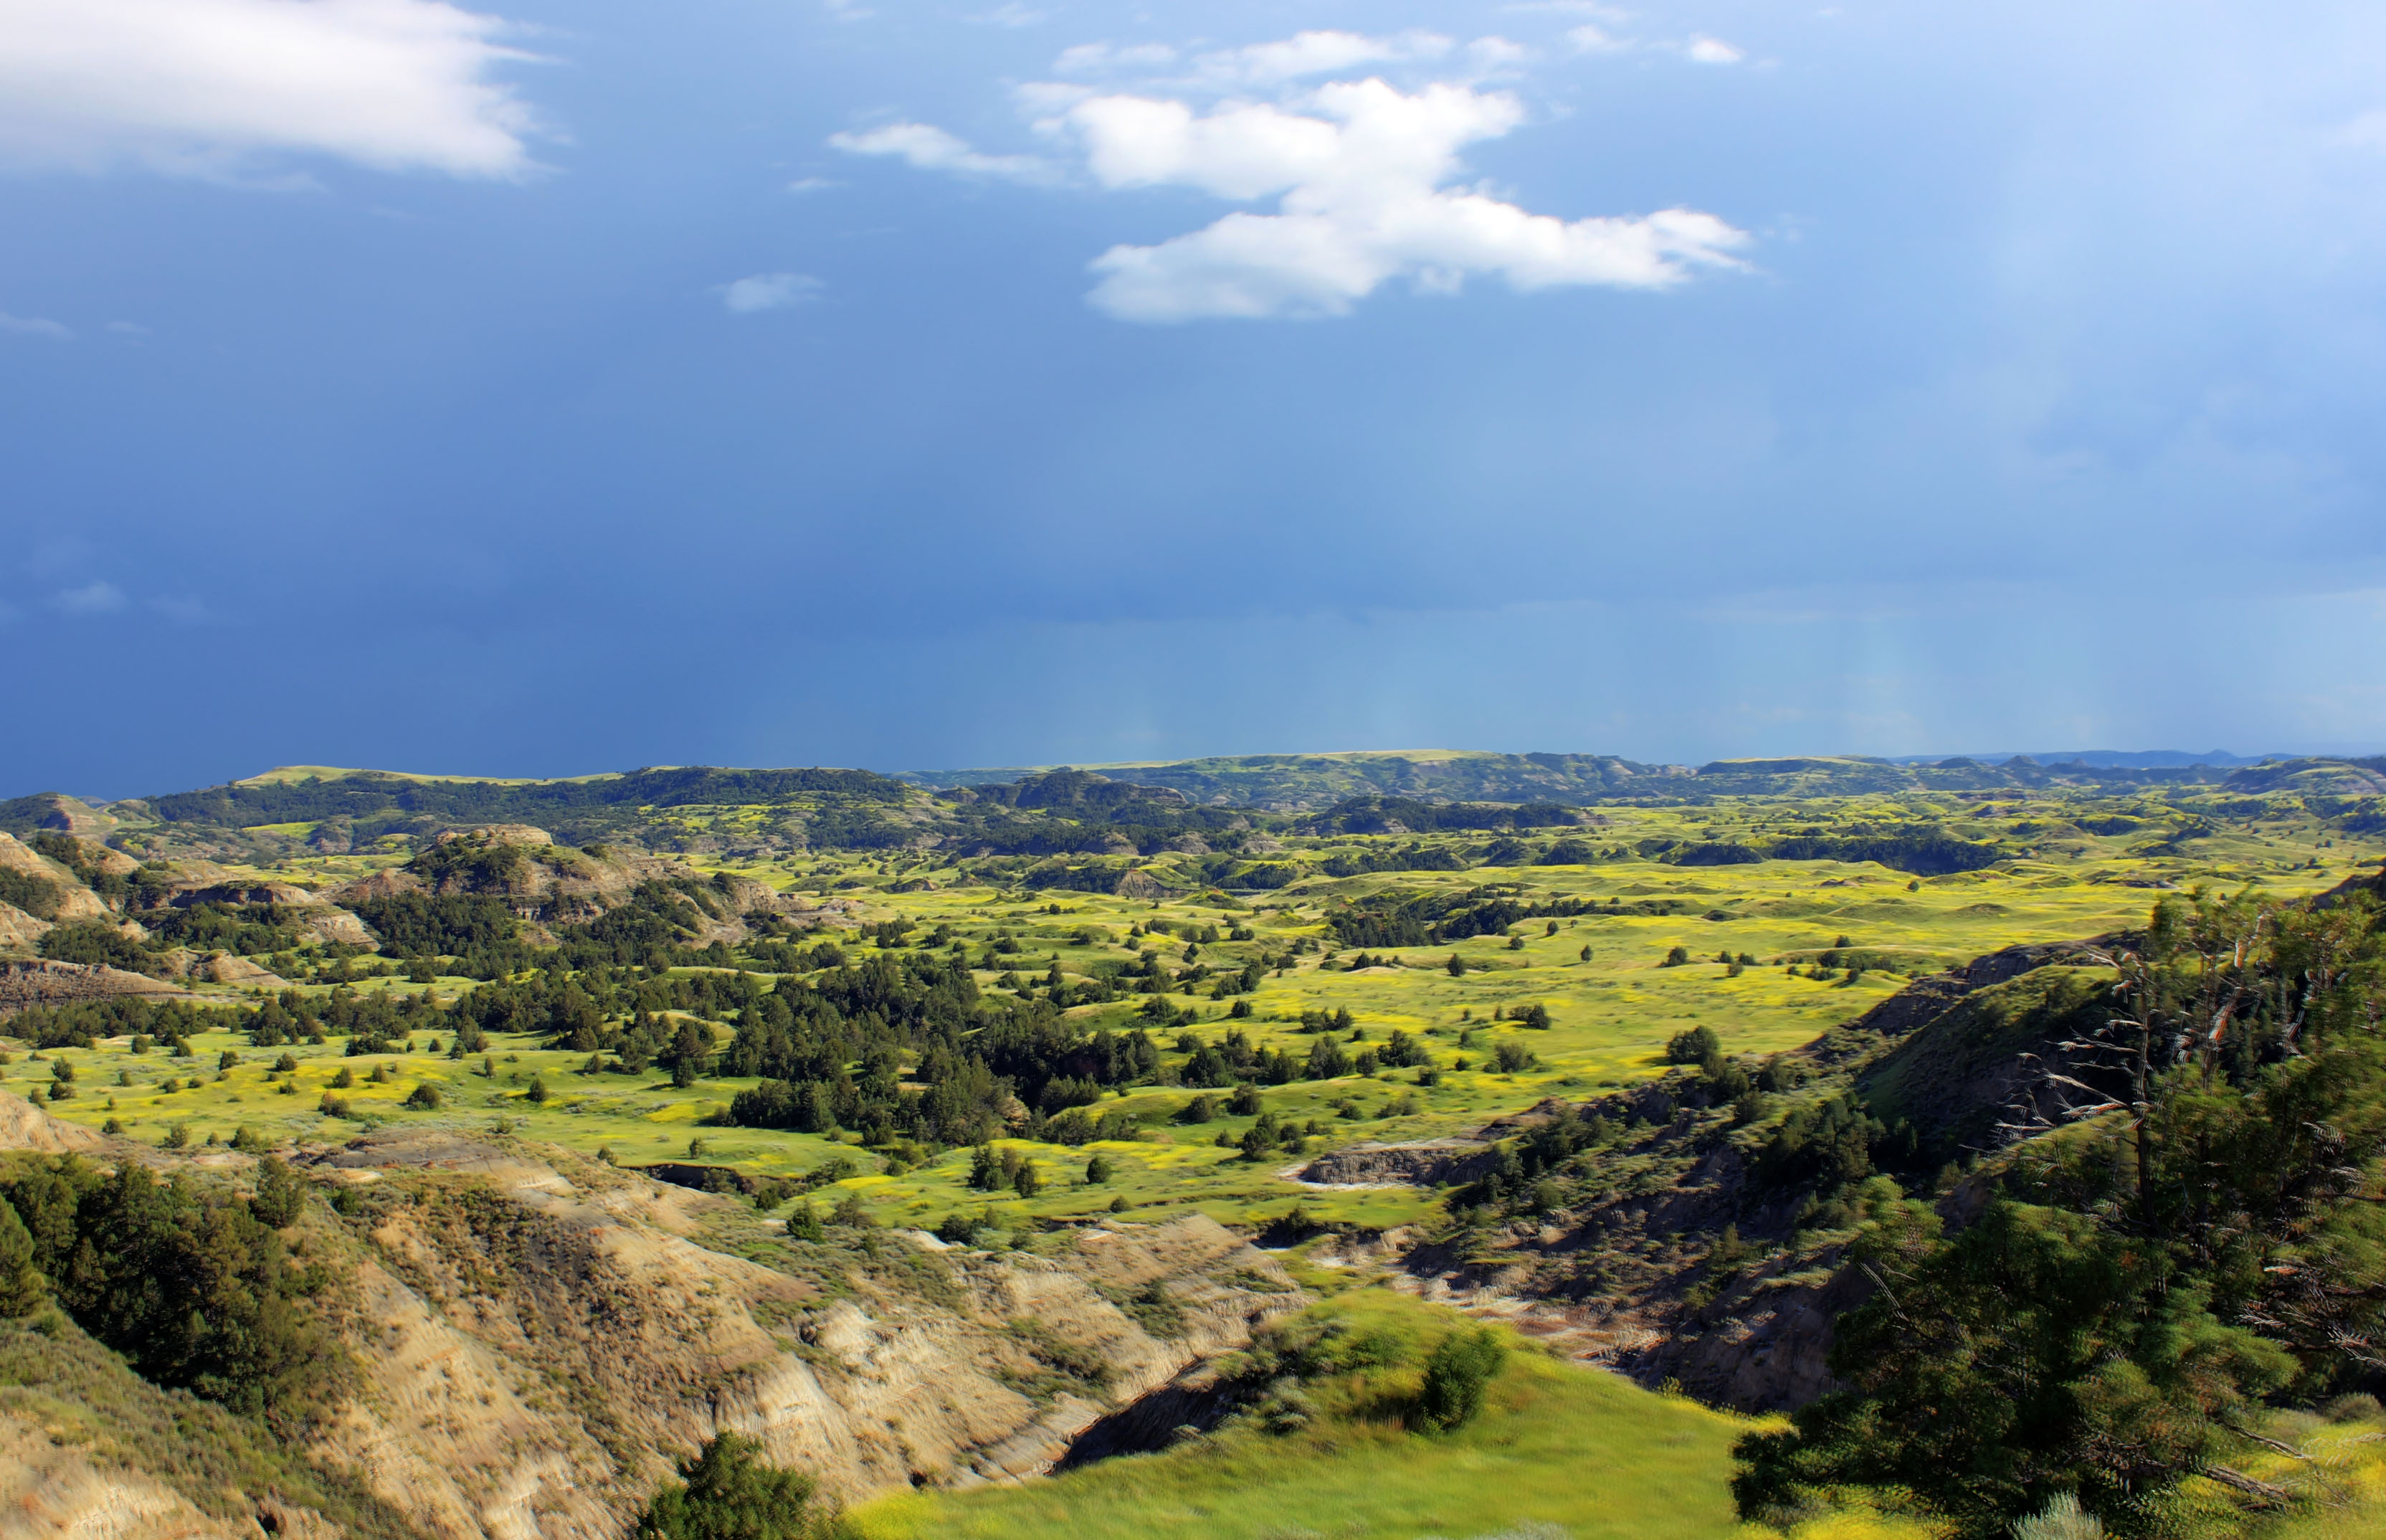 Rain in the valley at Theodore Roosevelt National Park North 3328x2148